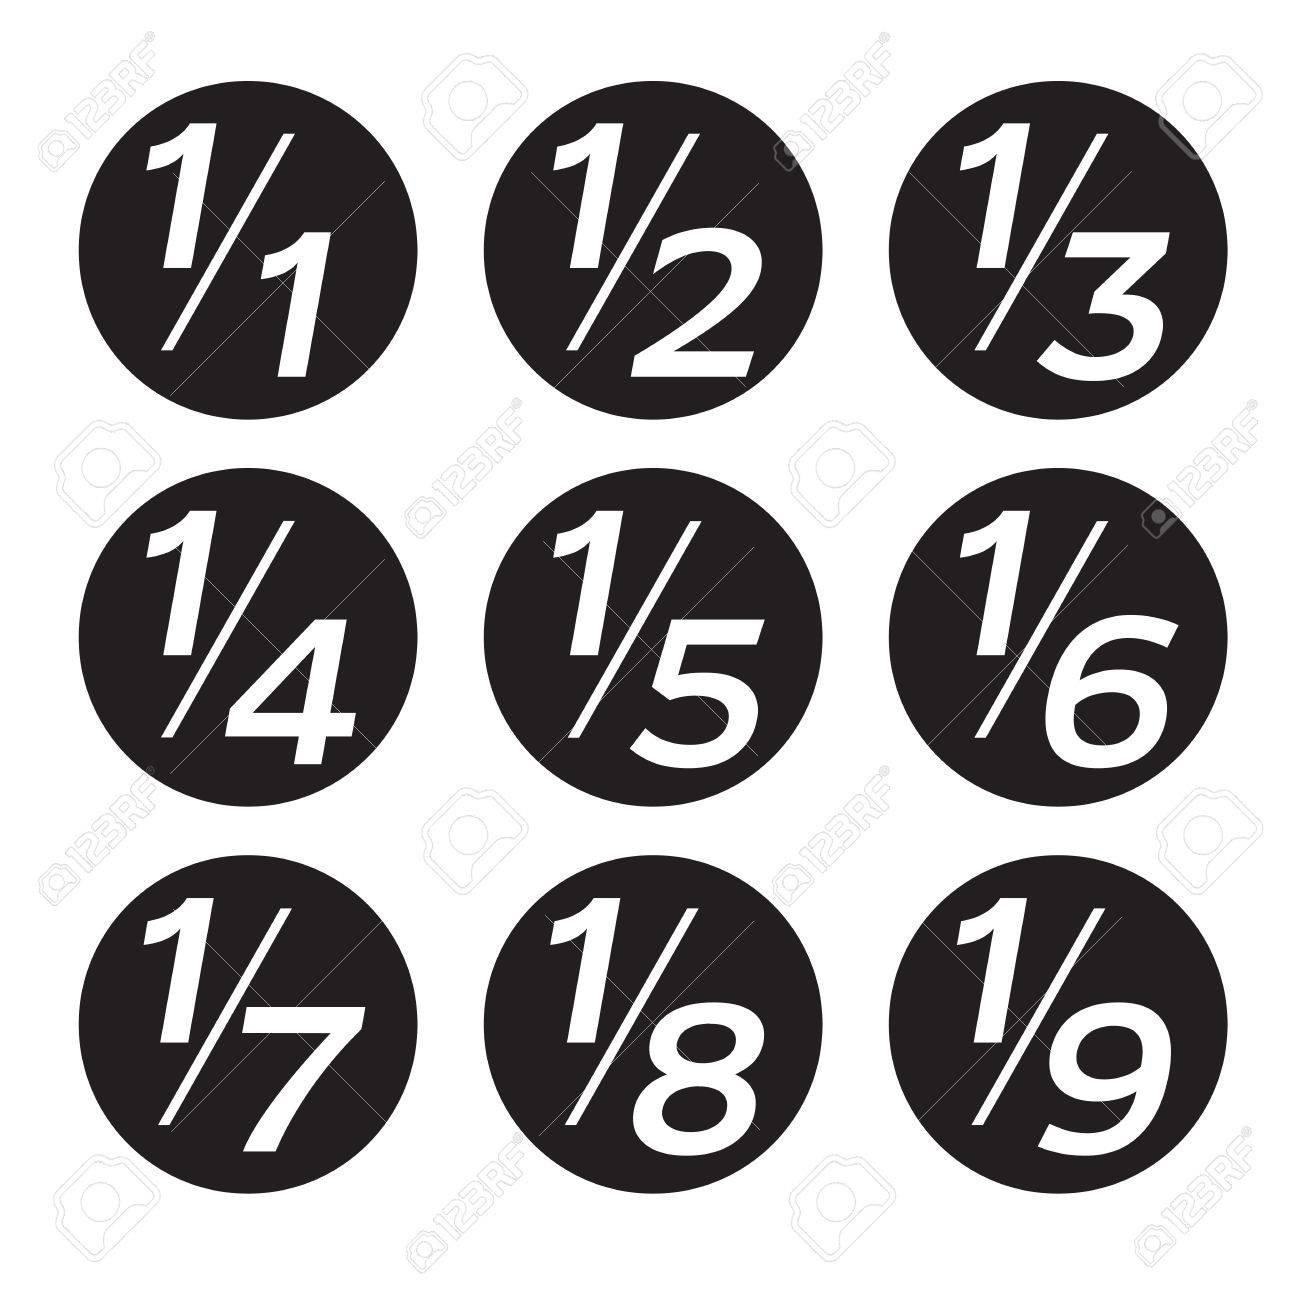 Vector Math Fractions Icons on White Background - 60164910